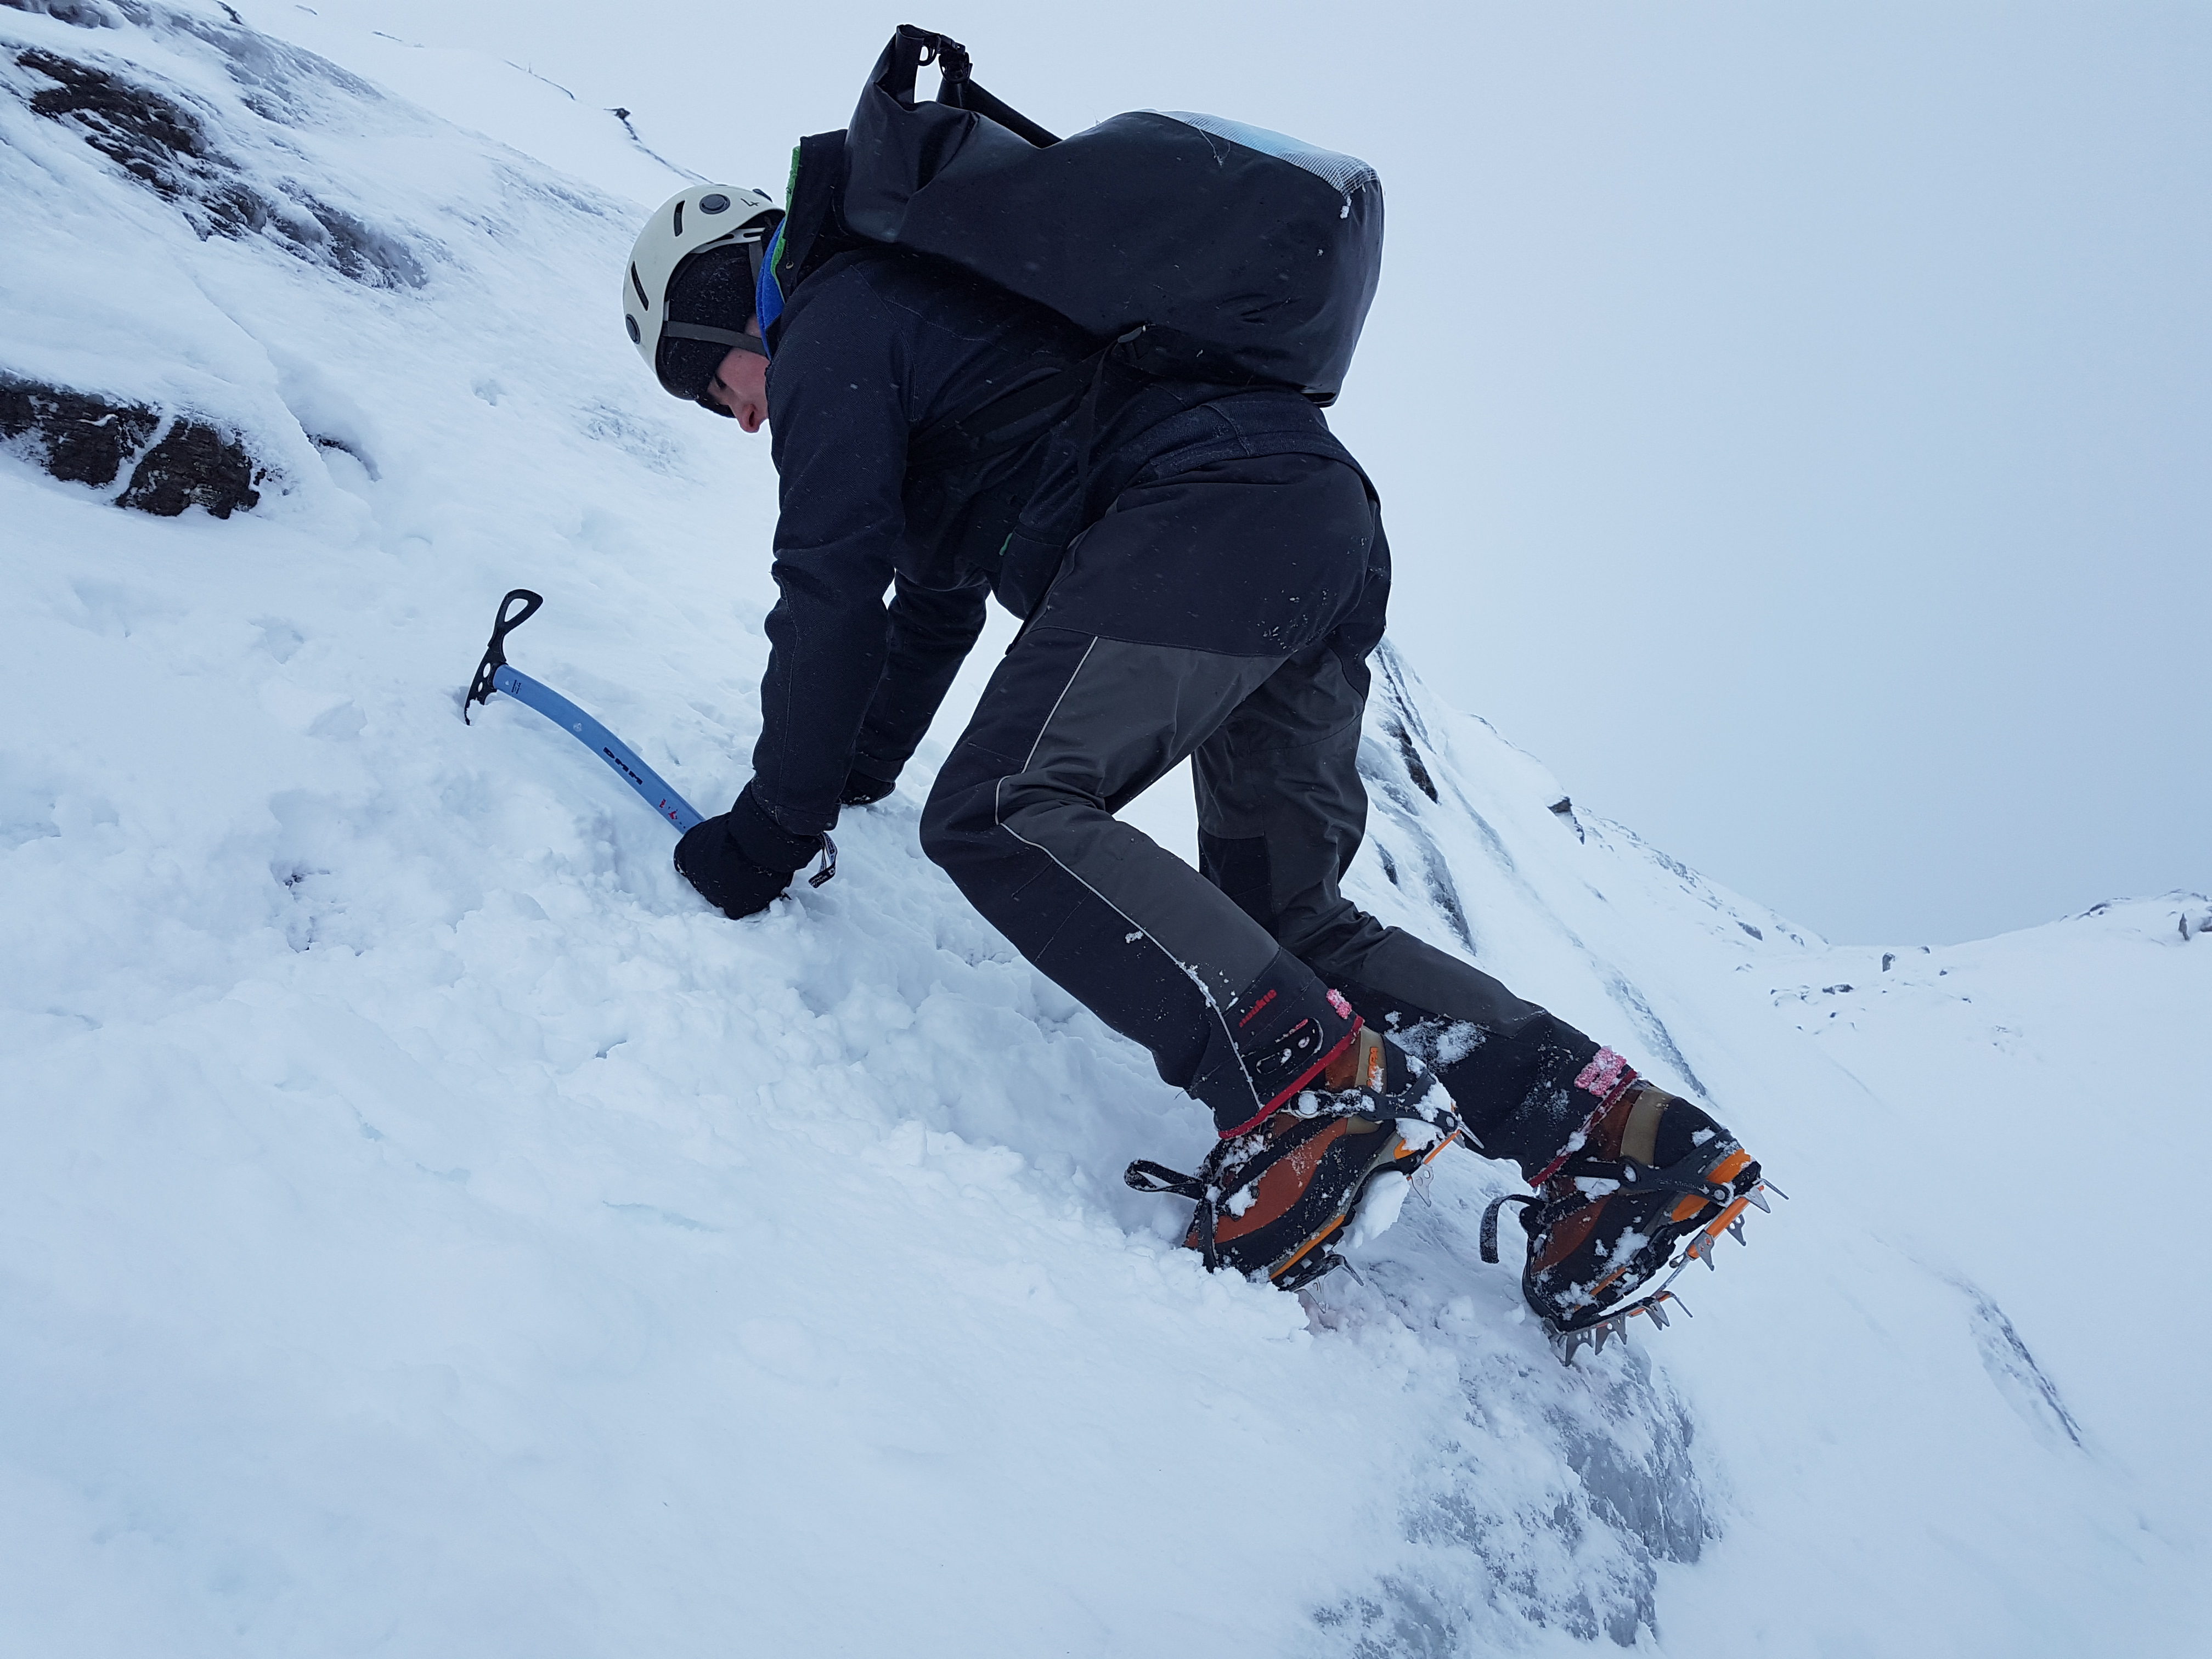 Learning how to use Ice Axe and Crampons